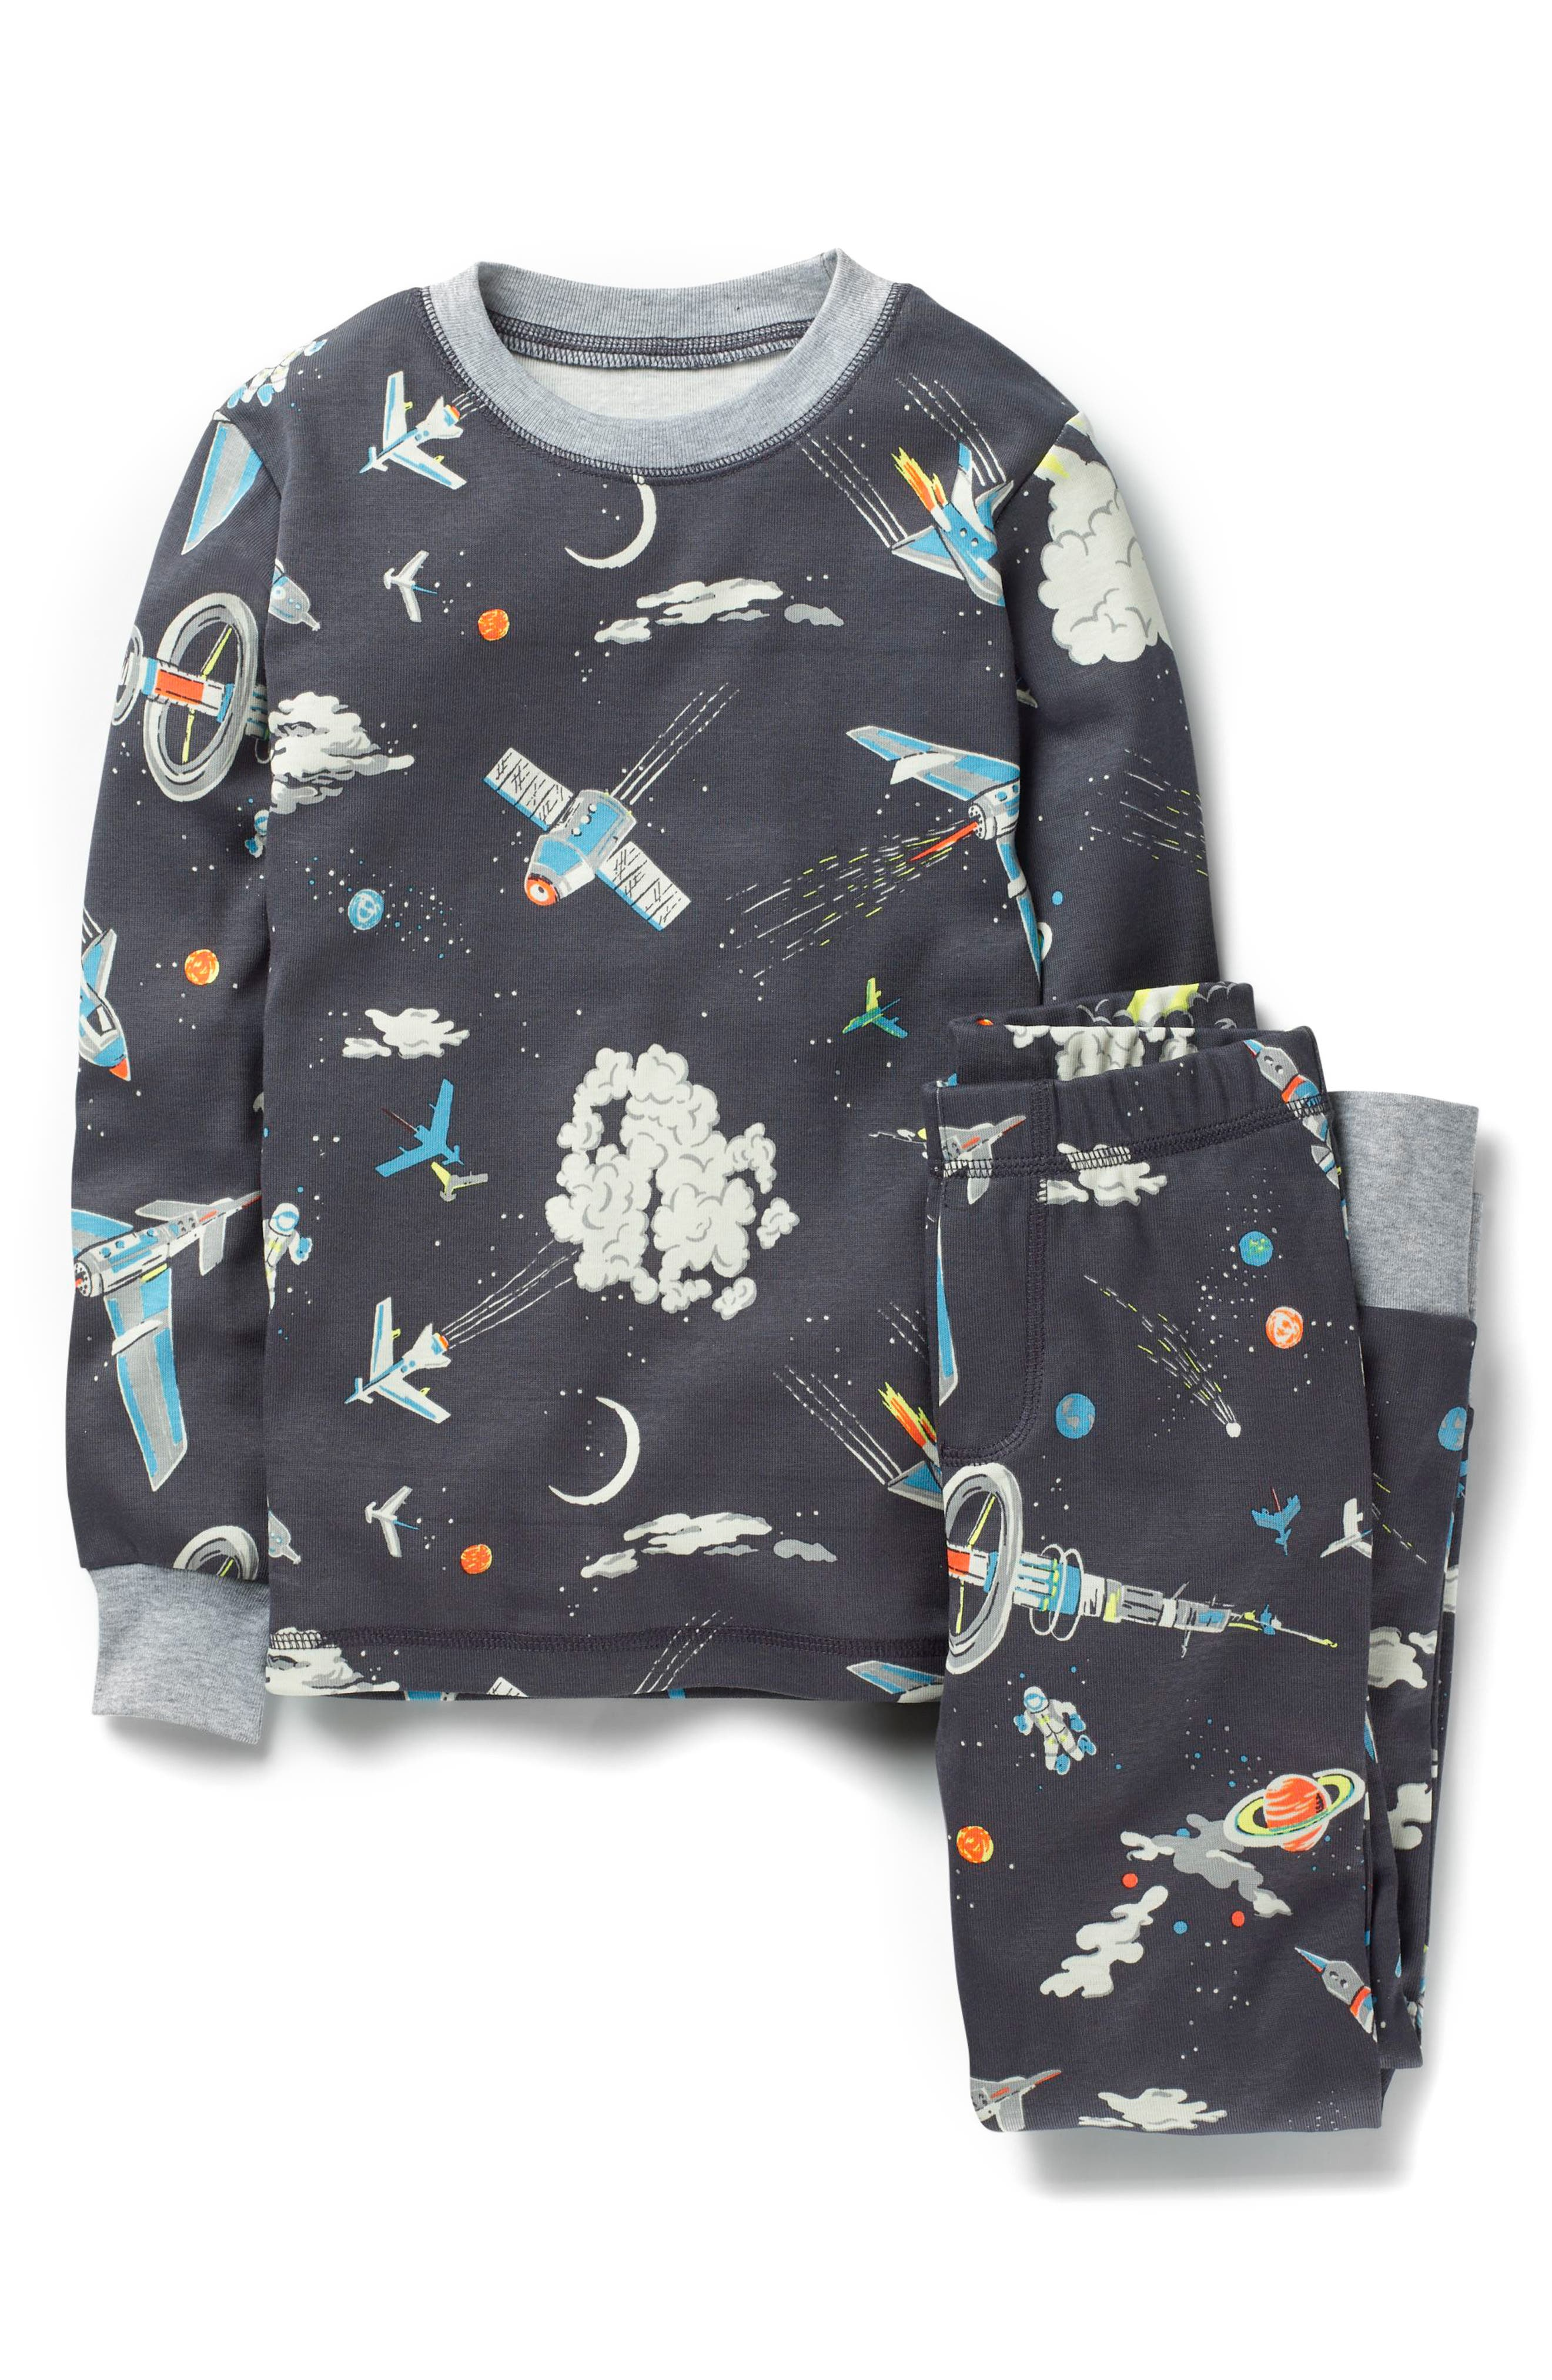 Glow in the Dark Fitted Two-Piece Pajamas,                             Main thumbnail 1, color,                             024